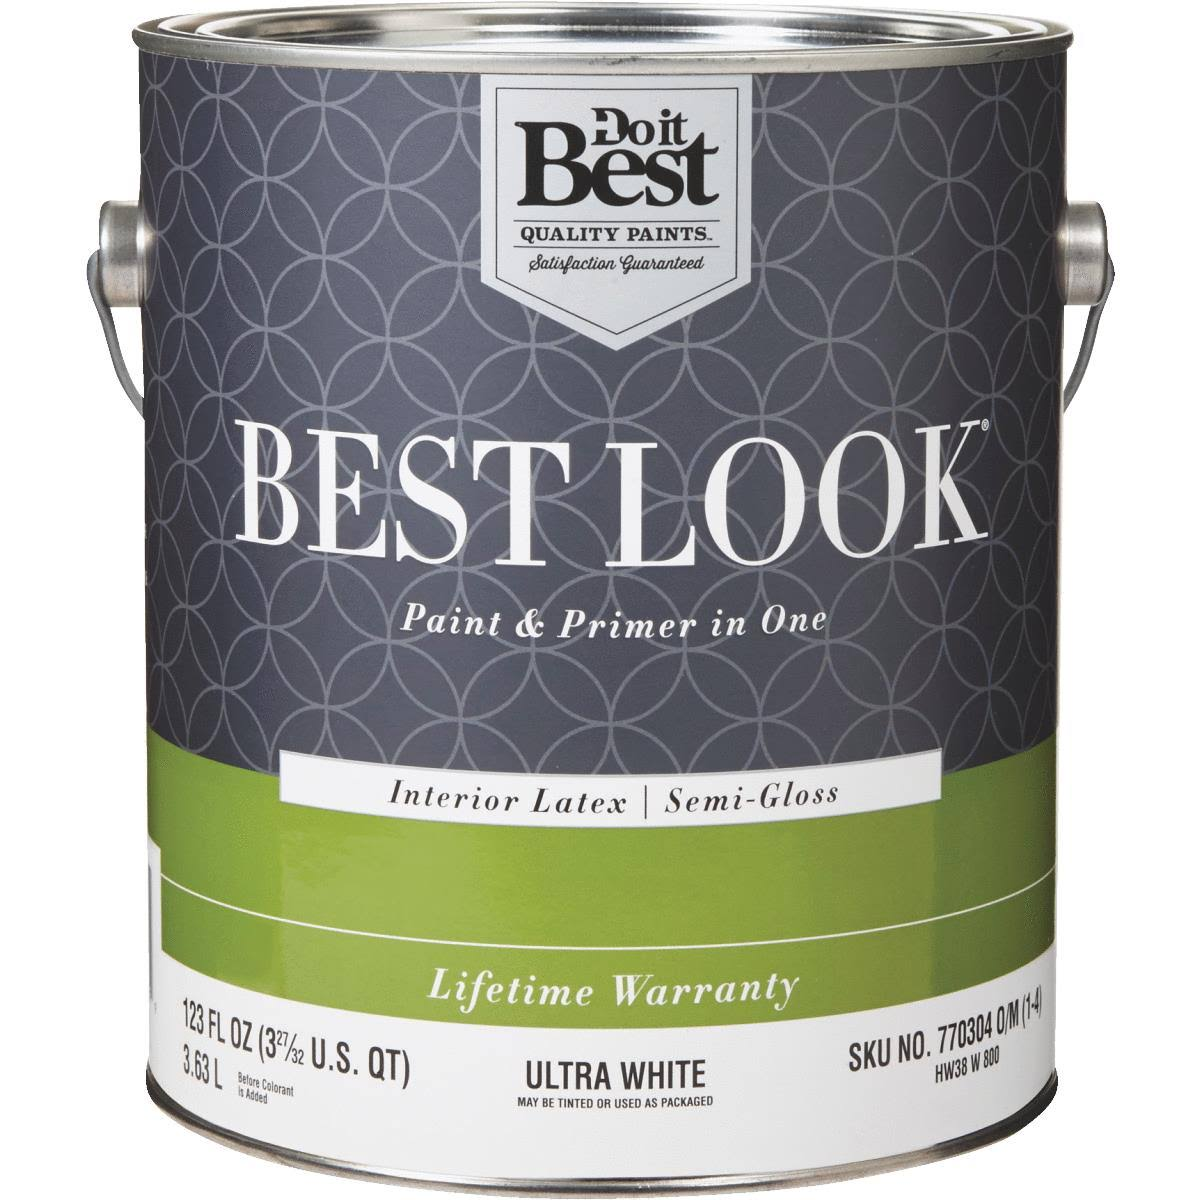 Best Look Latex Paint & Primer In One Semi-Gloss Enamel - Ultra White, Interior, 3.53l